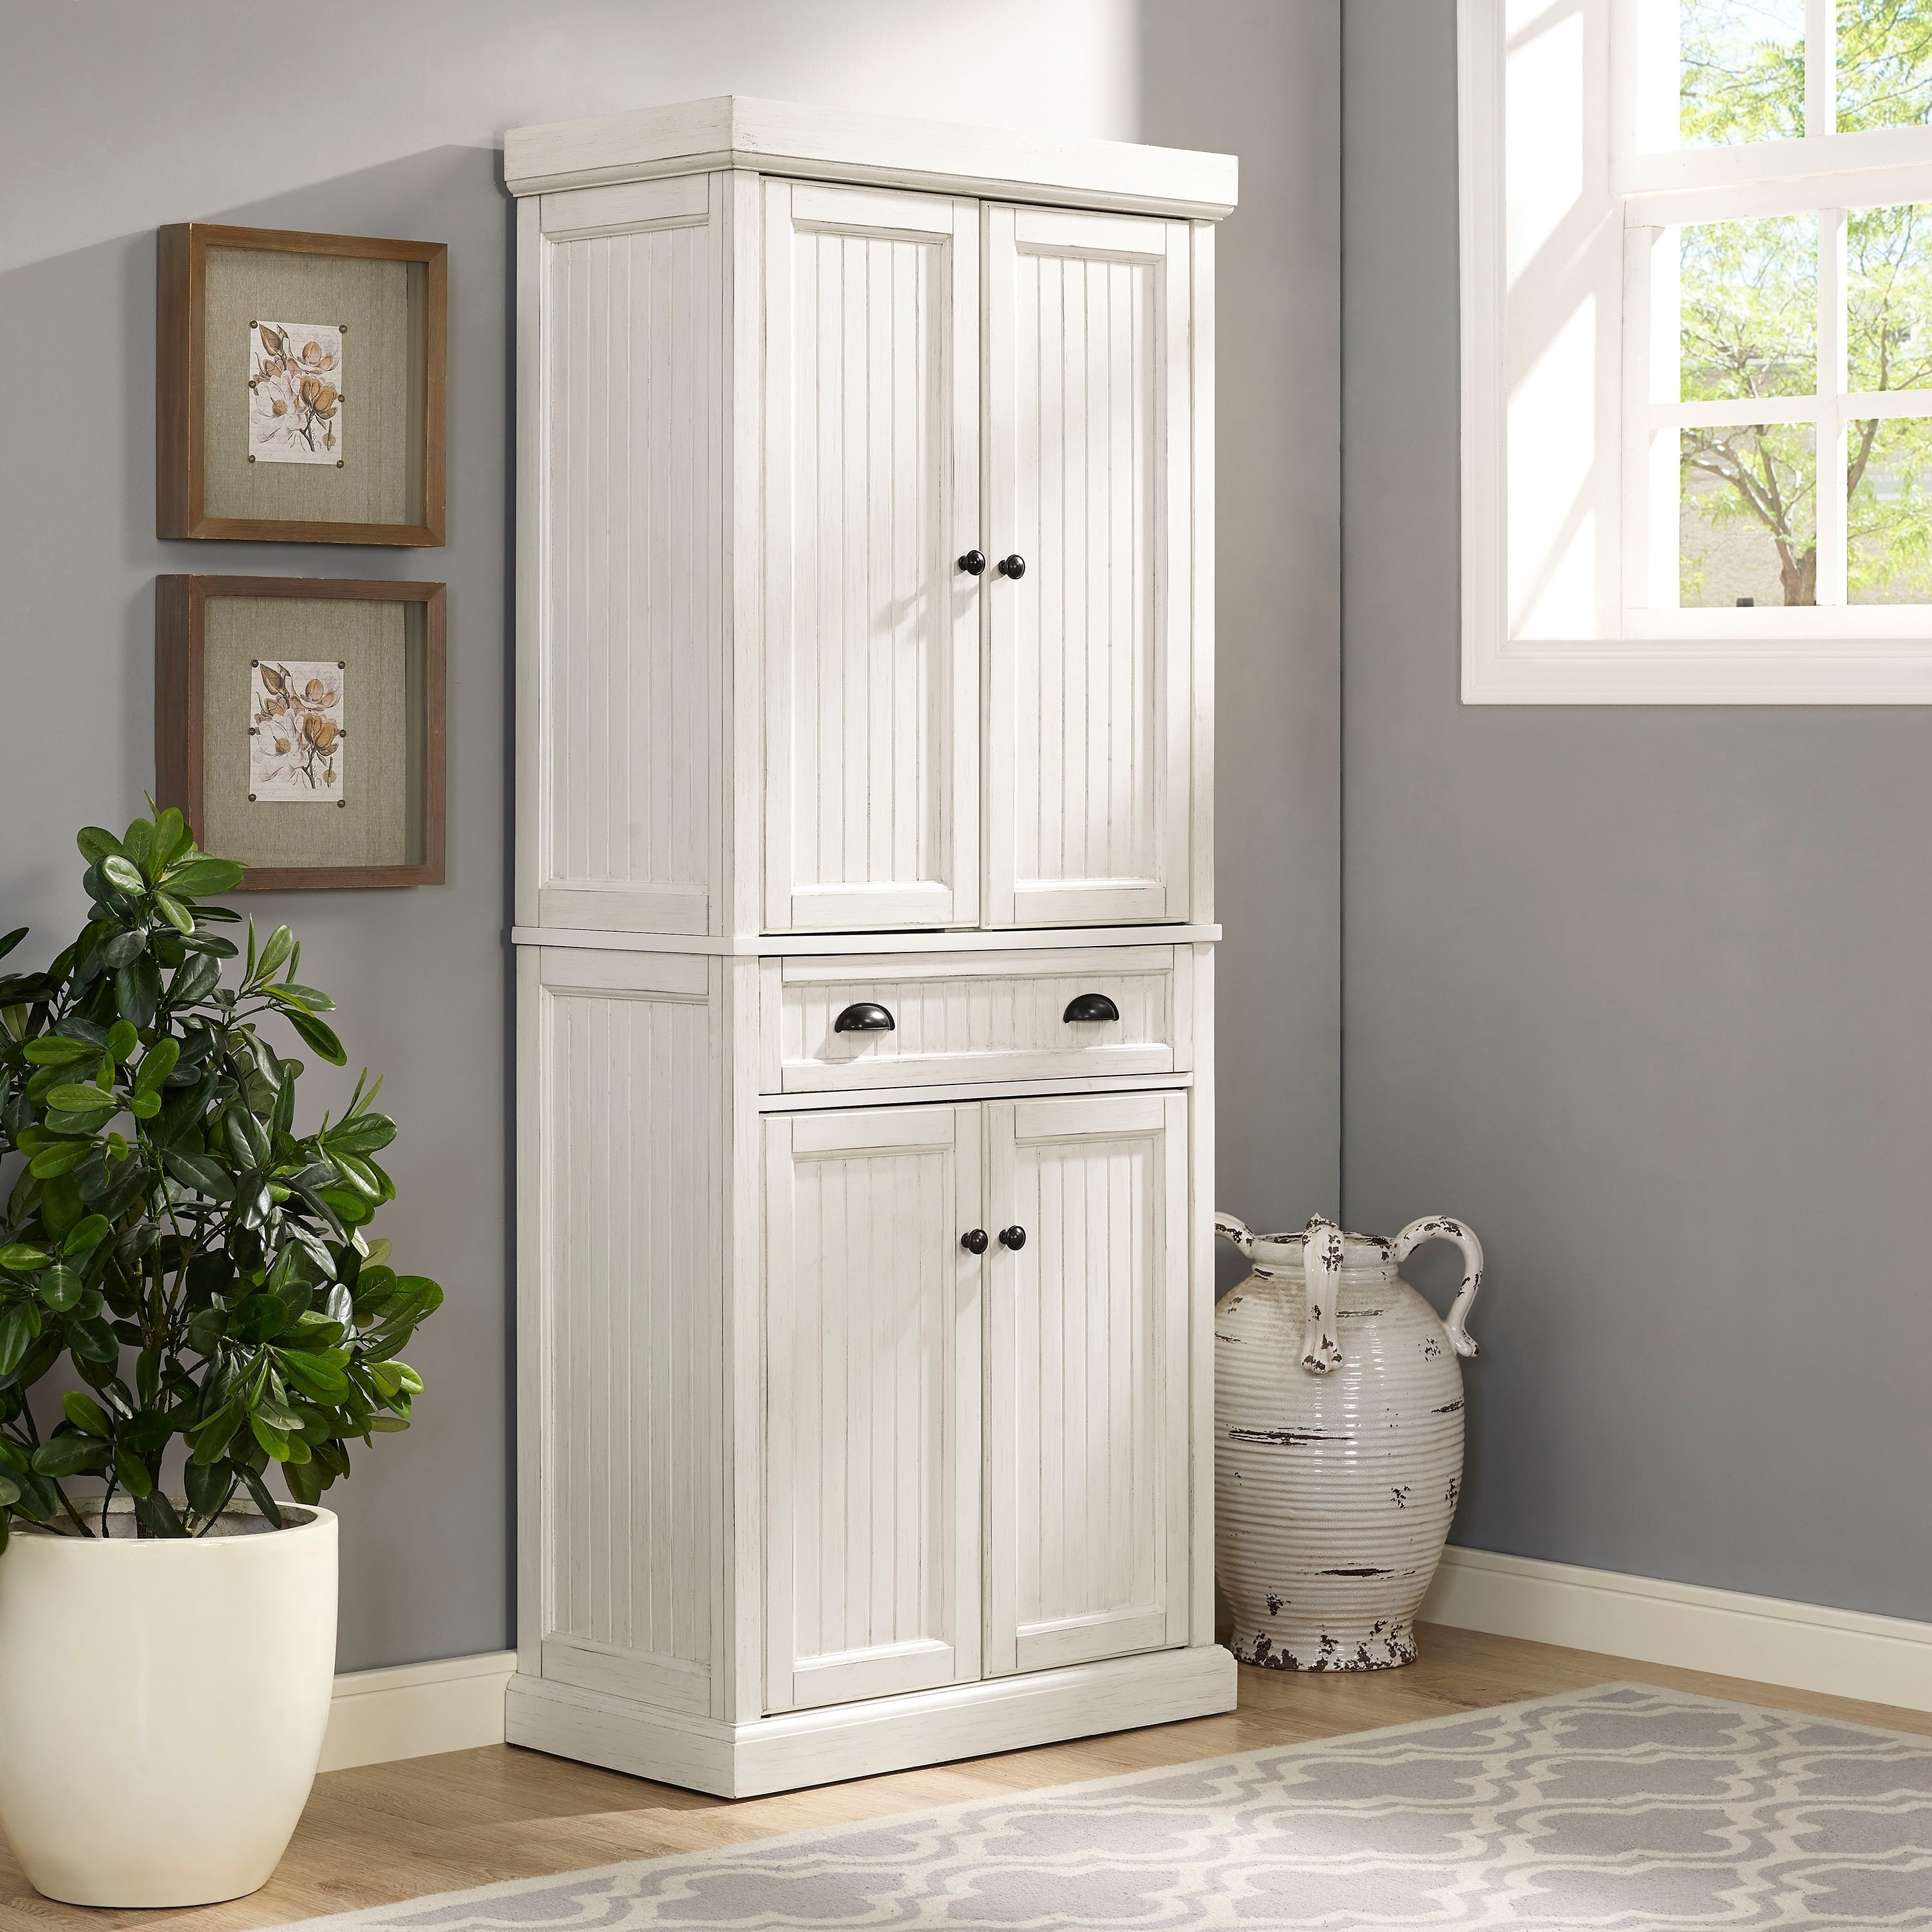 Crosley Furniture Seaside Kitchen Pantry in Distressed Wh...